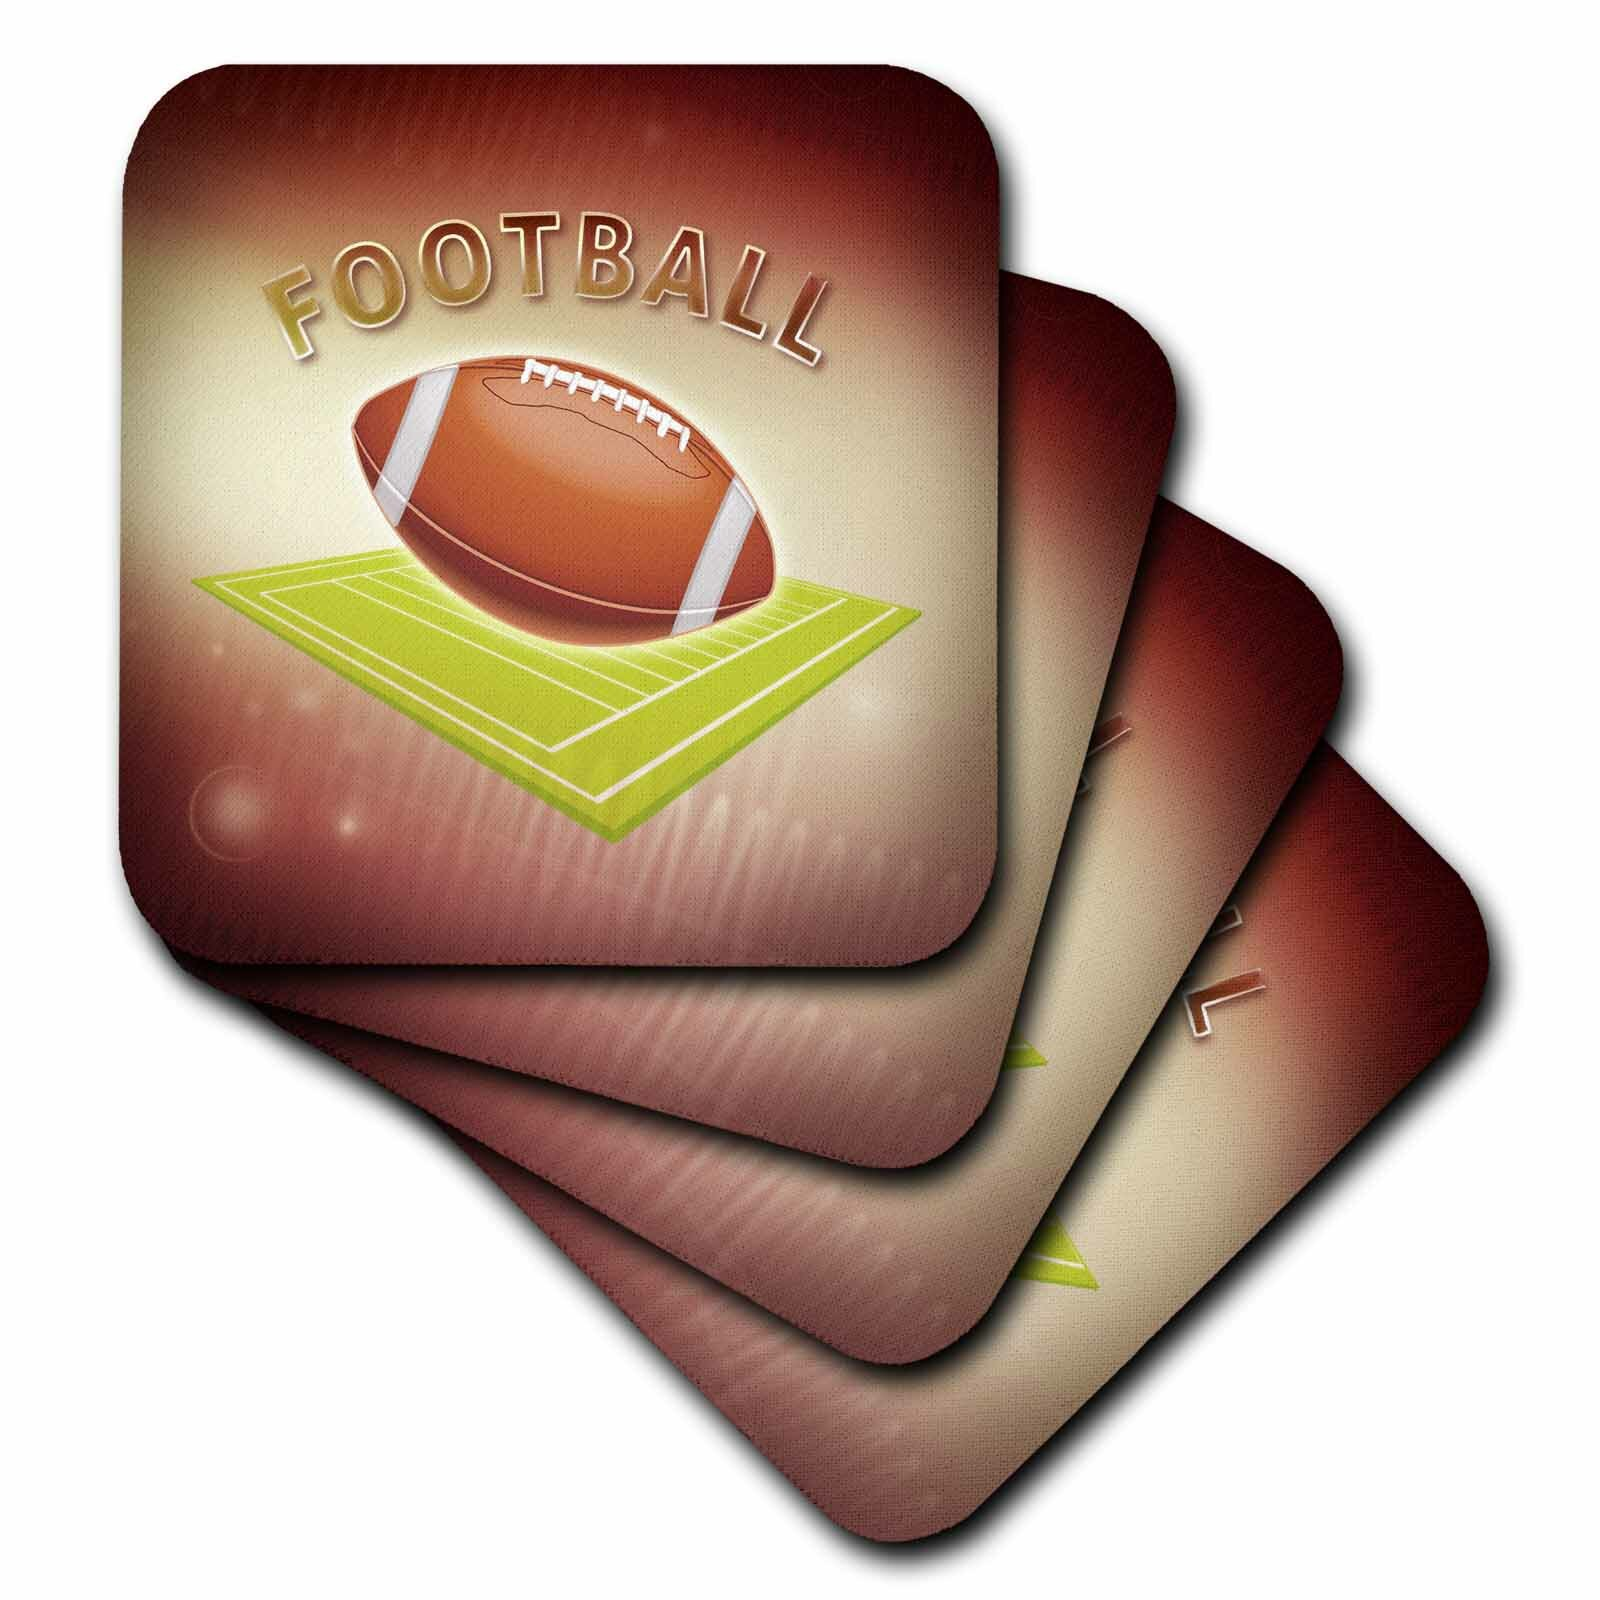 3drose Ceramic Tile Coasters Football Set Of 4 Cst 21981 3